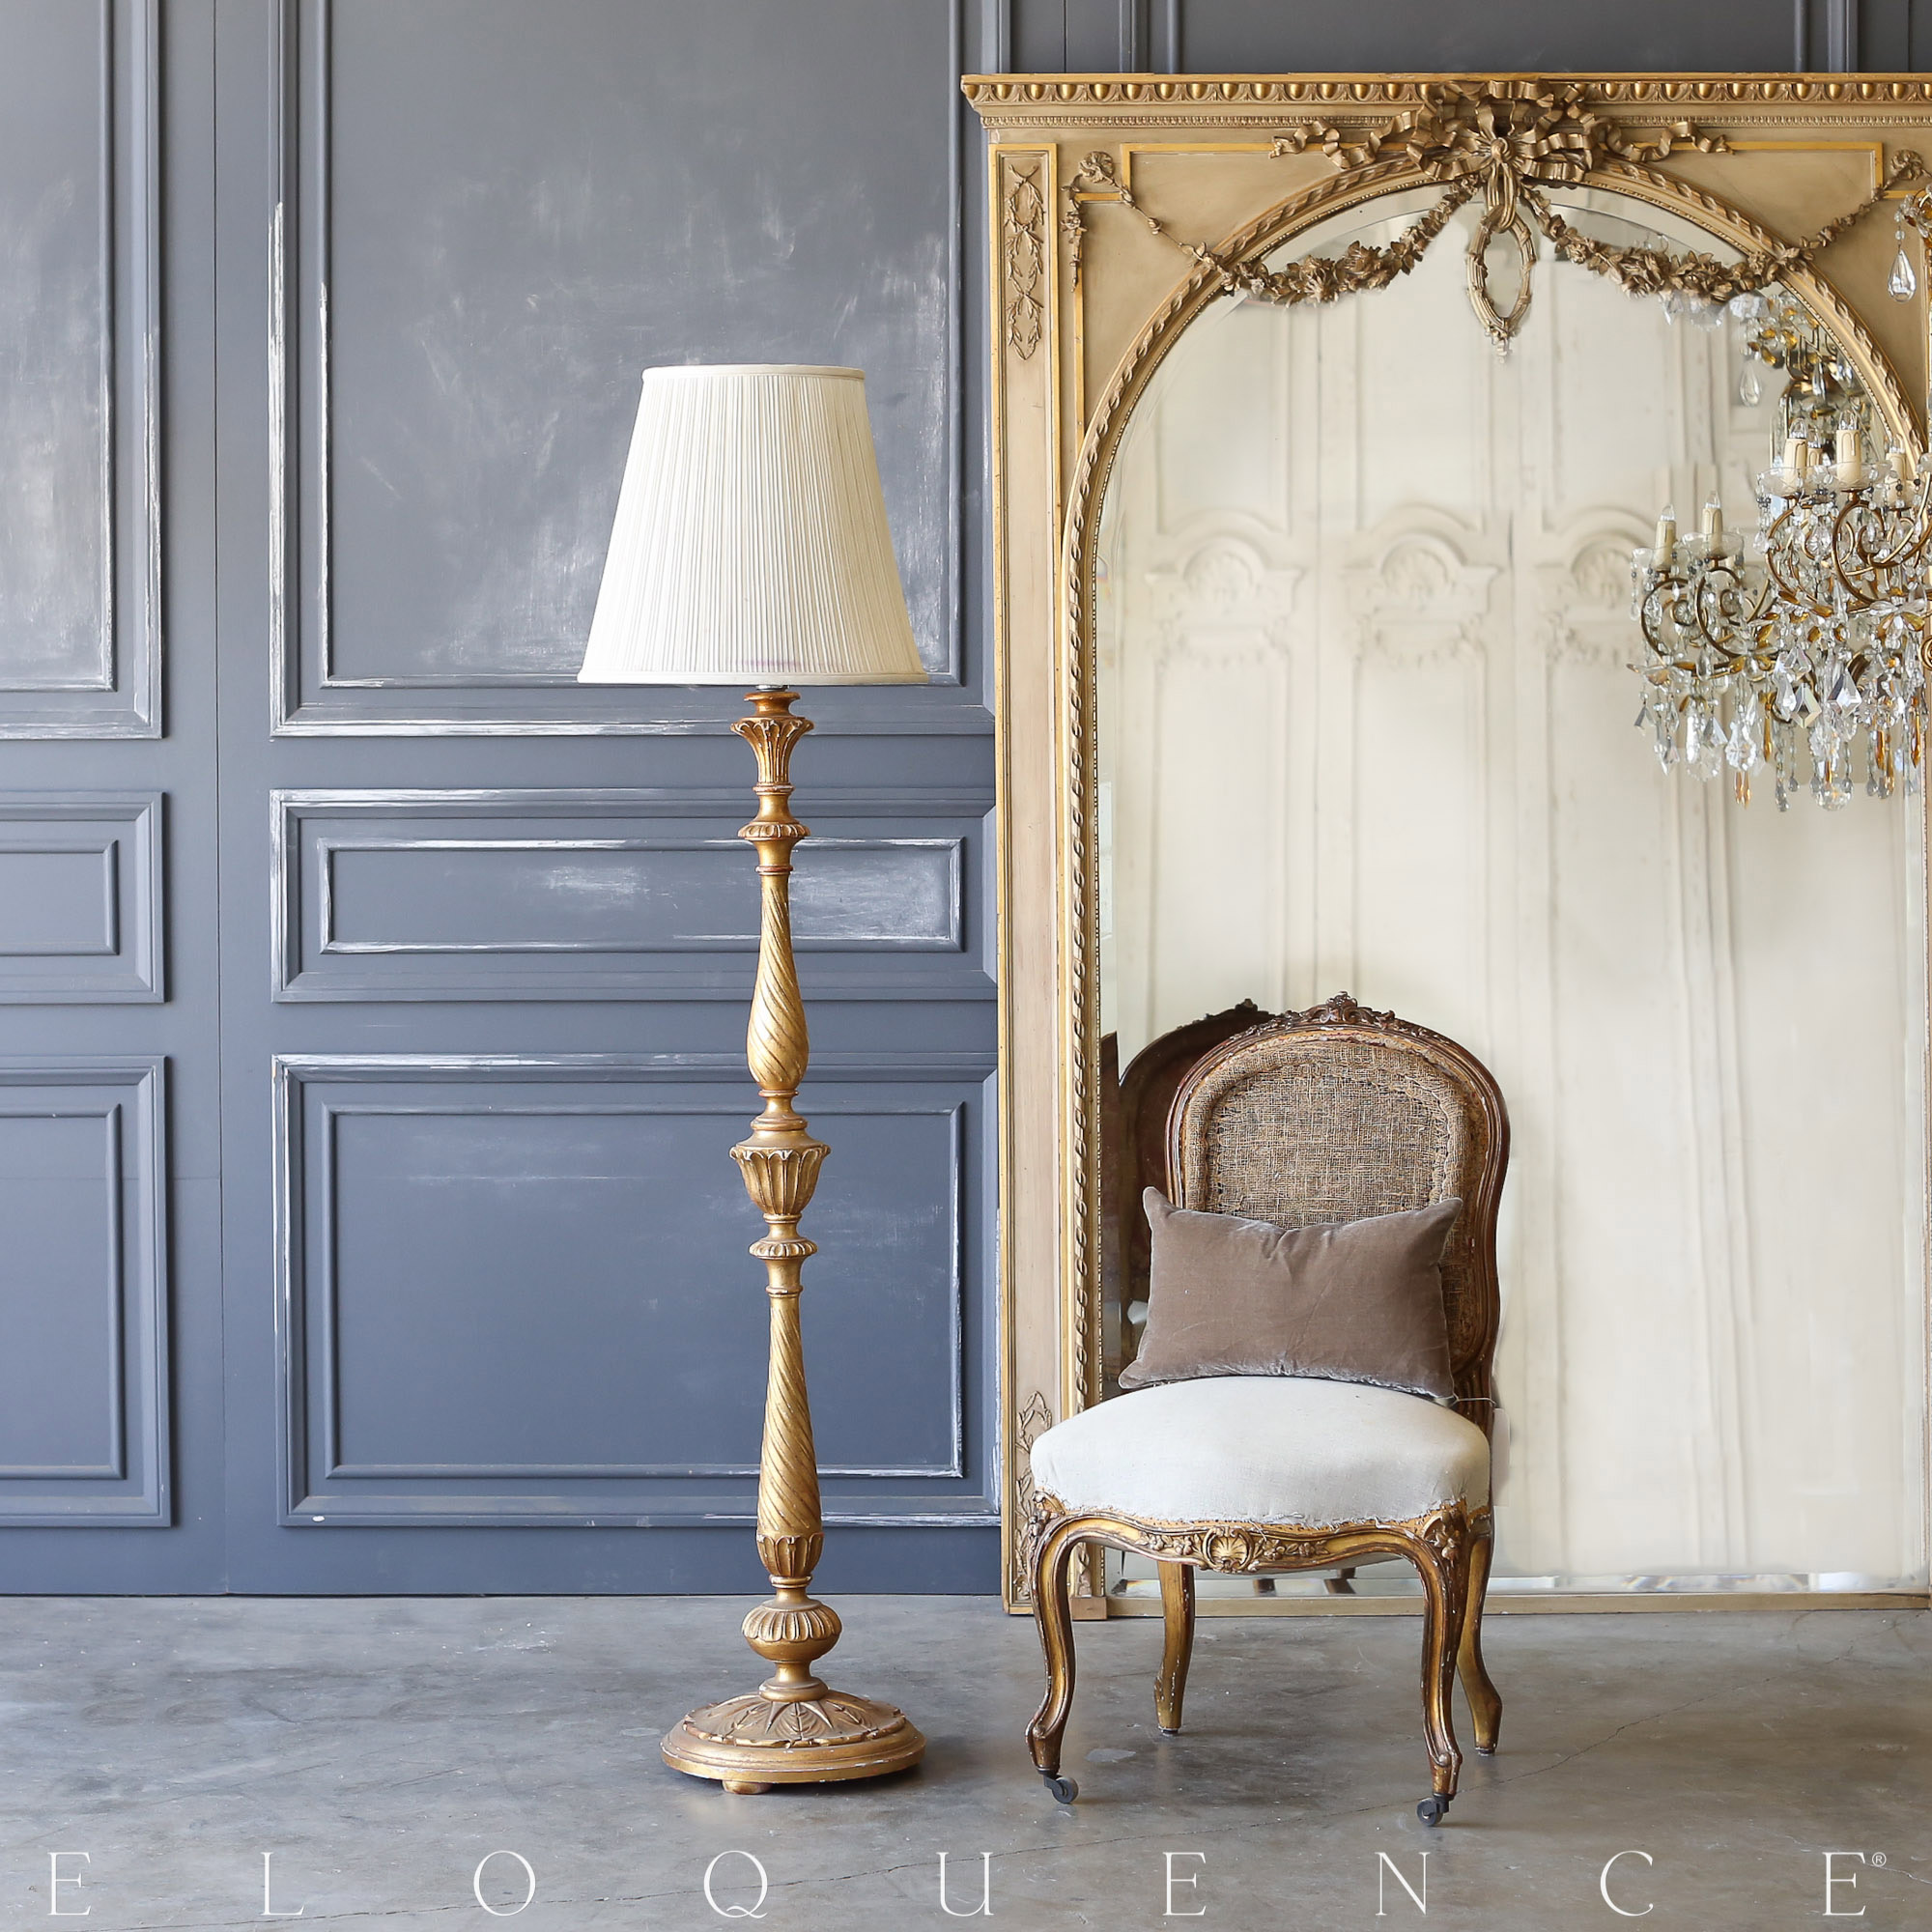 Eloquence® Vintage French Floor Lamp: 1940